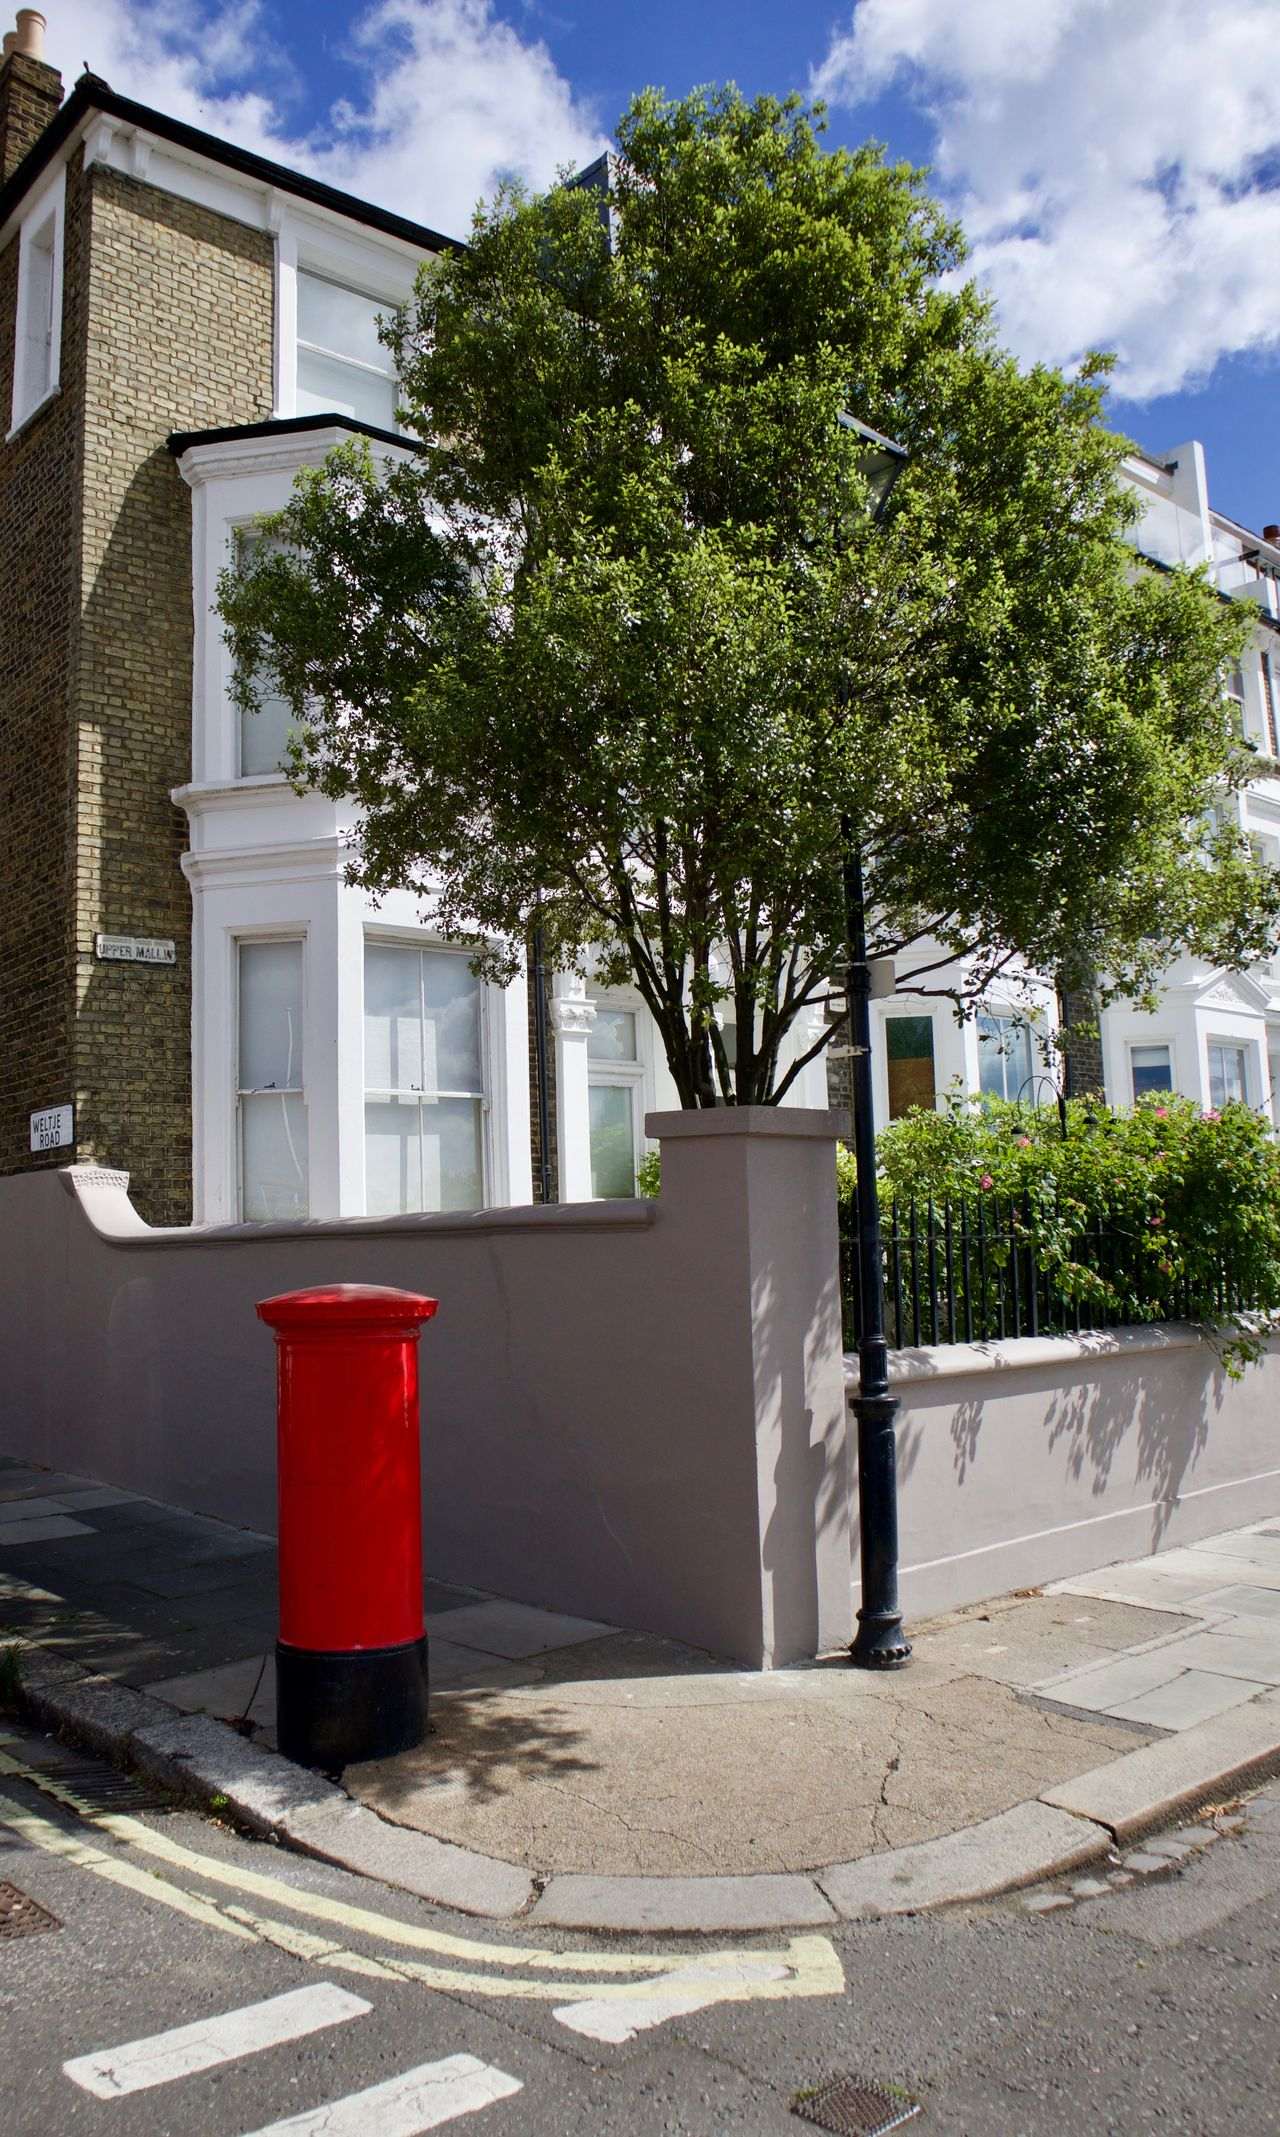 England Green Growth Hanging Out House Landscape Letter Box London Relaxing Street Streetphotography Tree Uk Urban